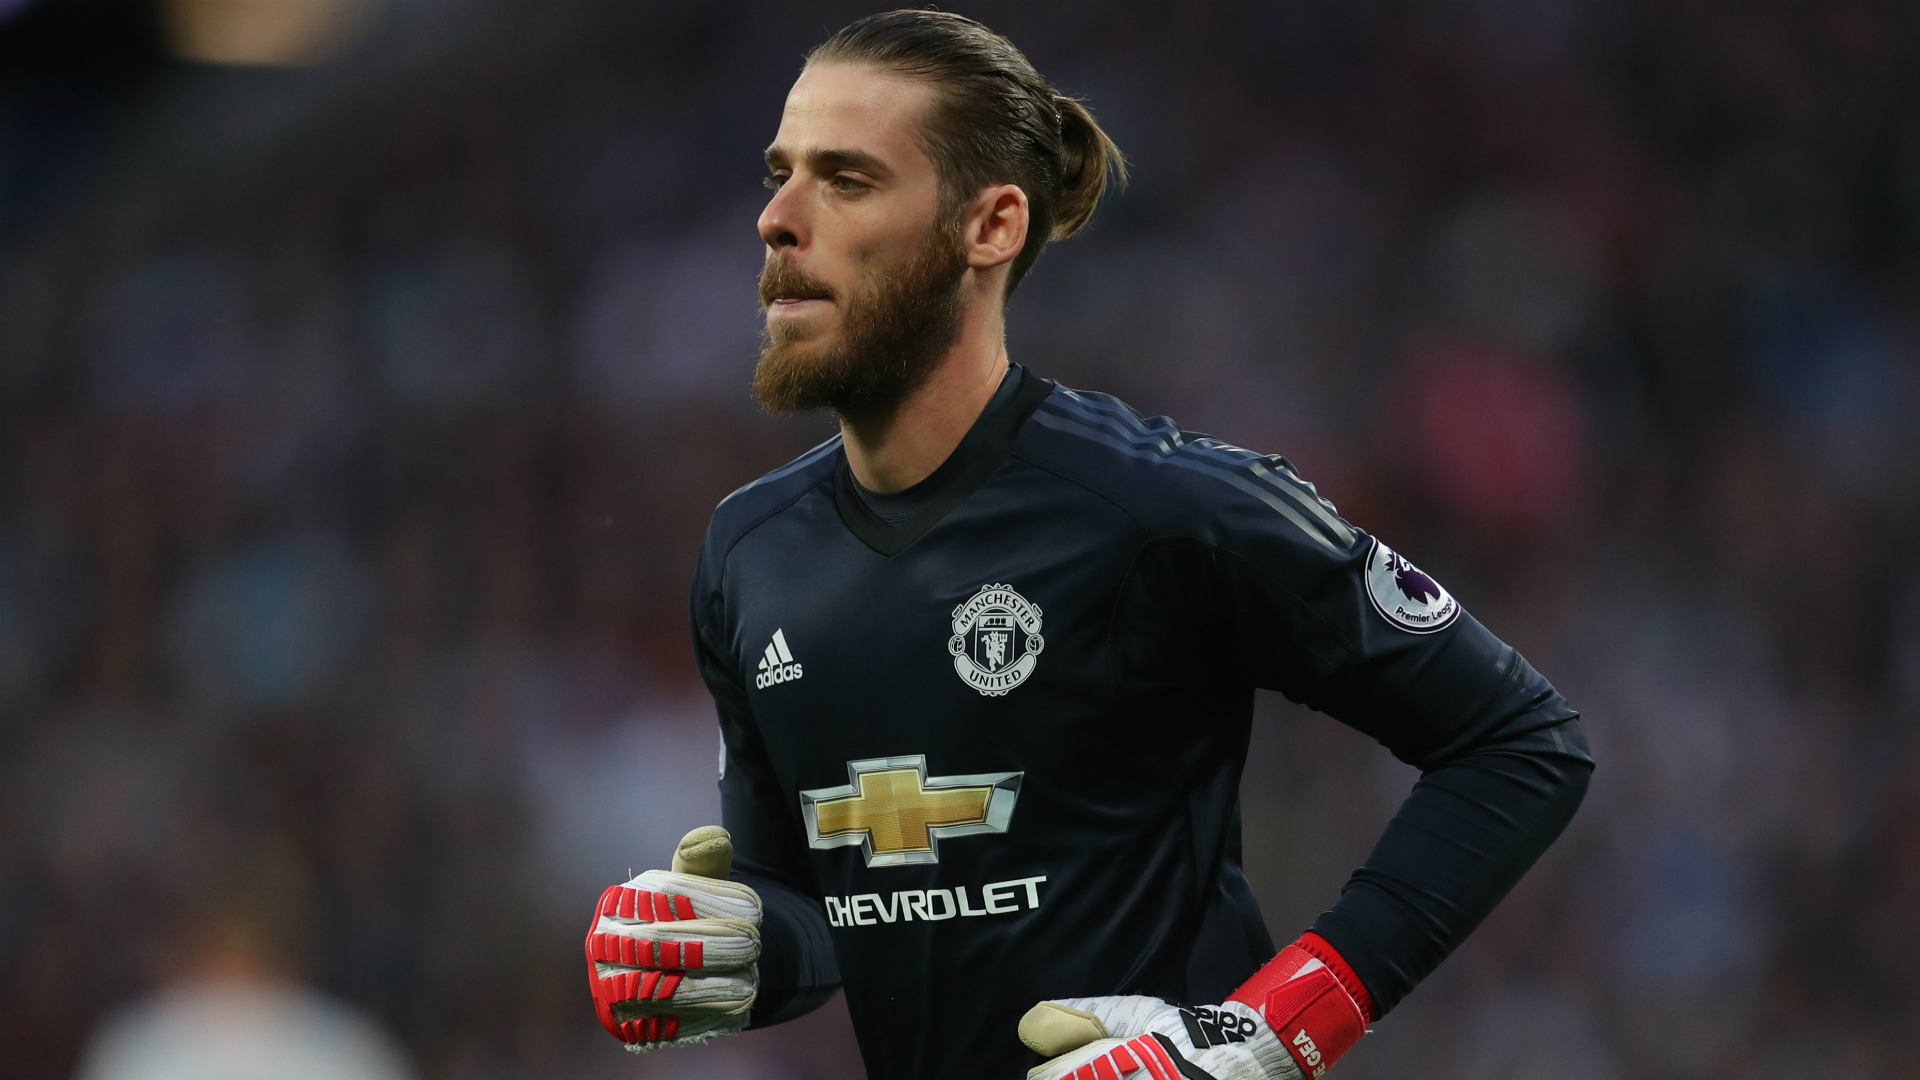 David de Gea Has Often Saved The Defenders - Former Manchester United Coach